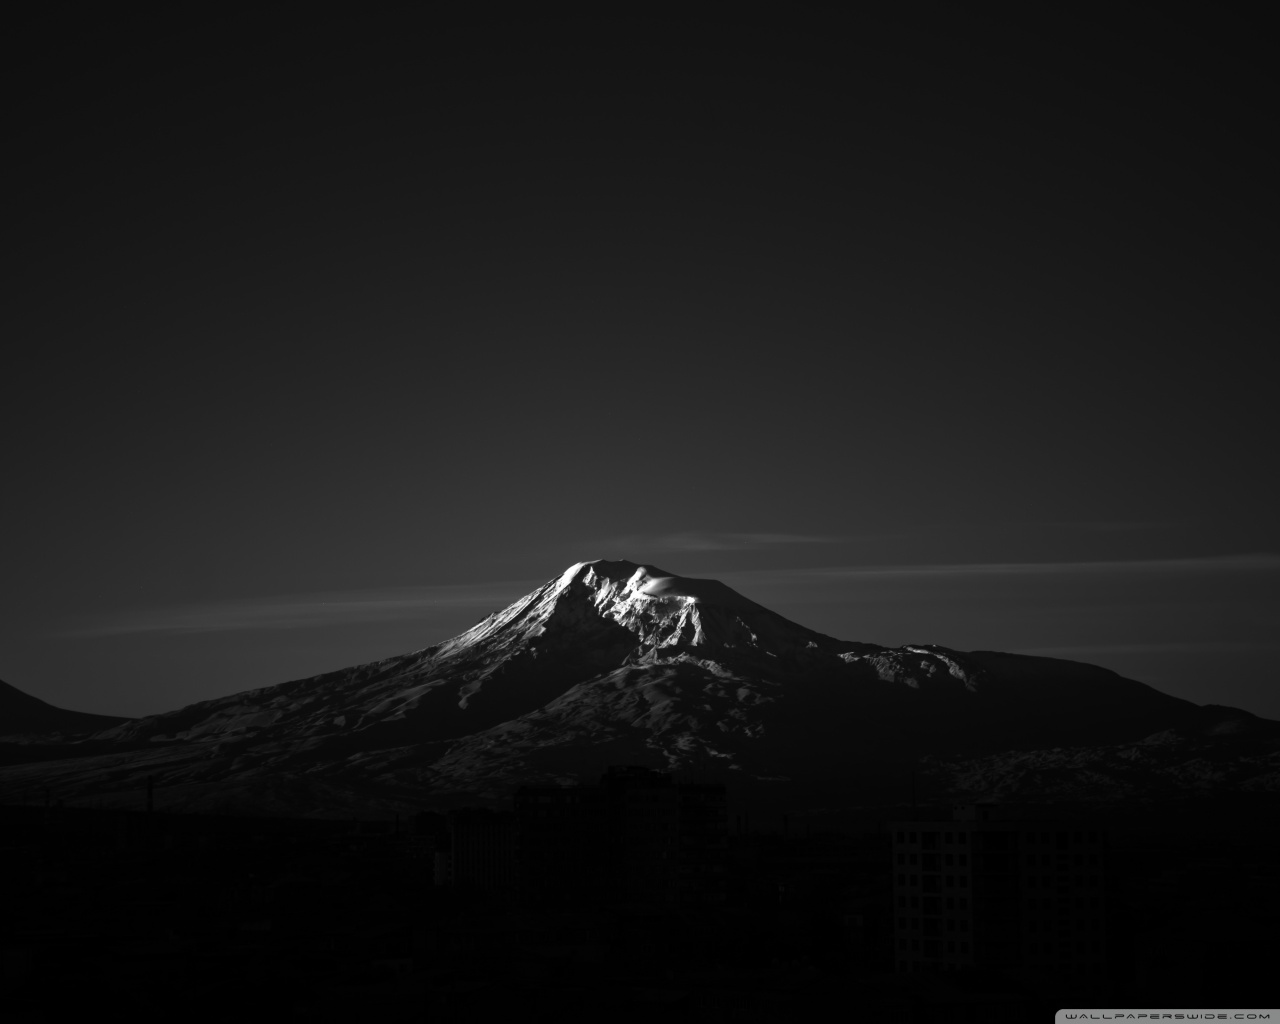 Black And White Mountain Wallpaper Random Wallpaper 36338374